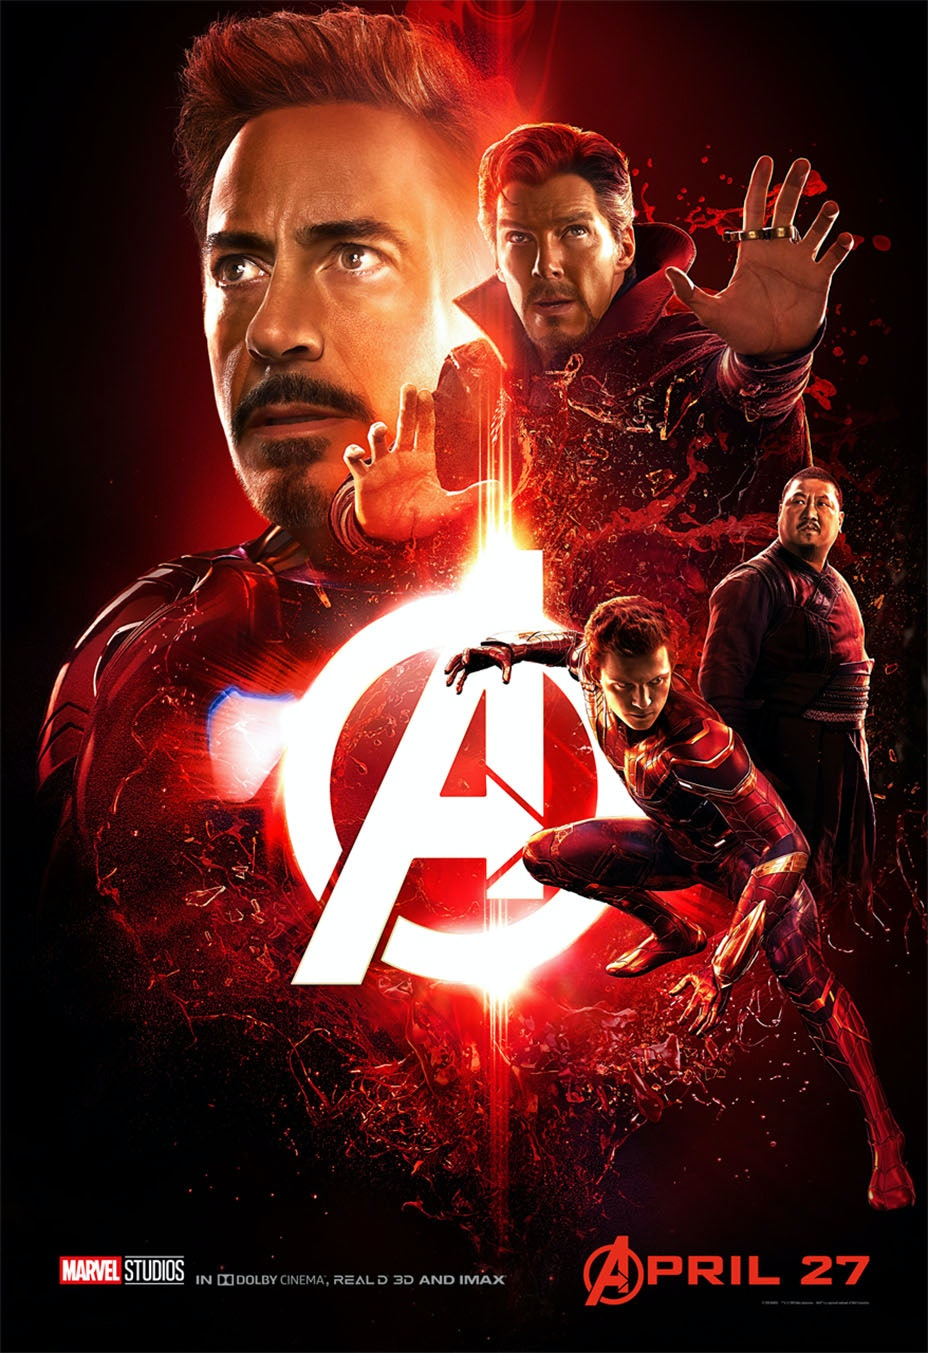 'Infinity War' poster with Iron Man, Doctor Strange, Wong, and Spider-Man